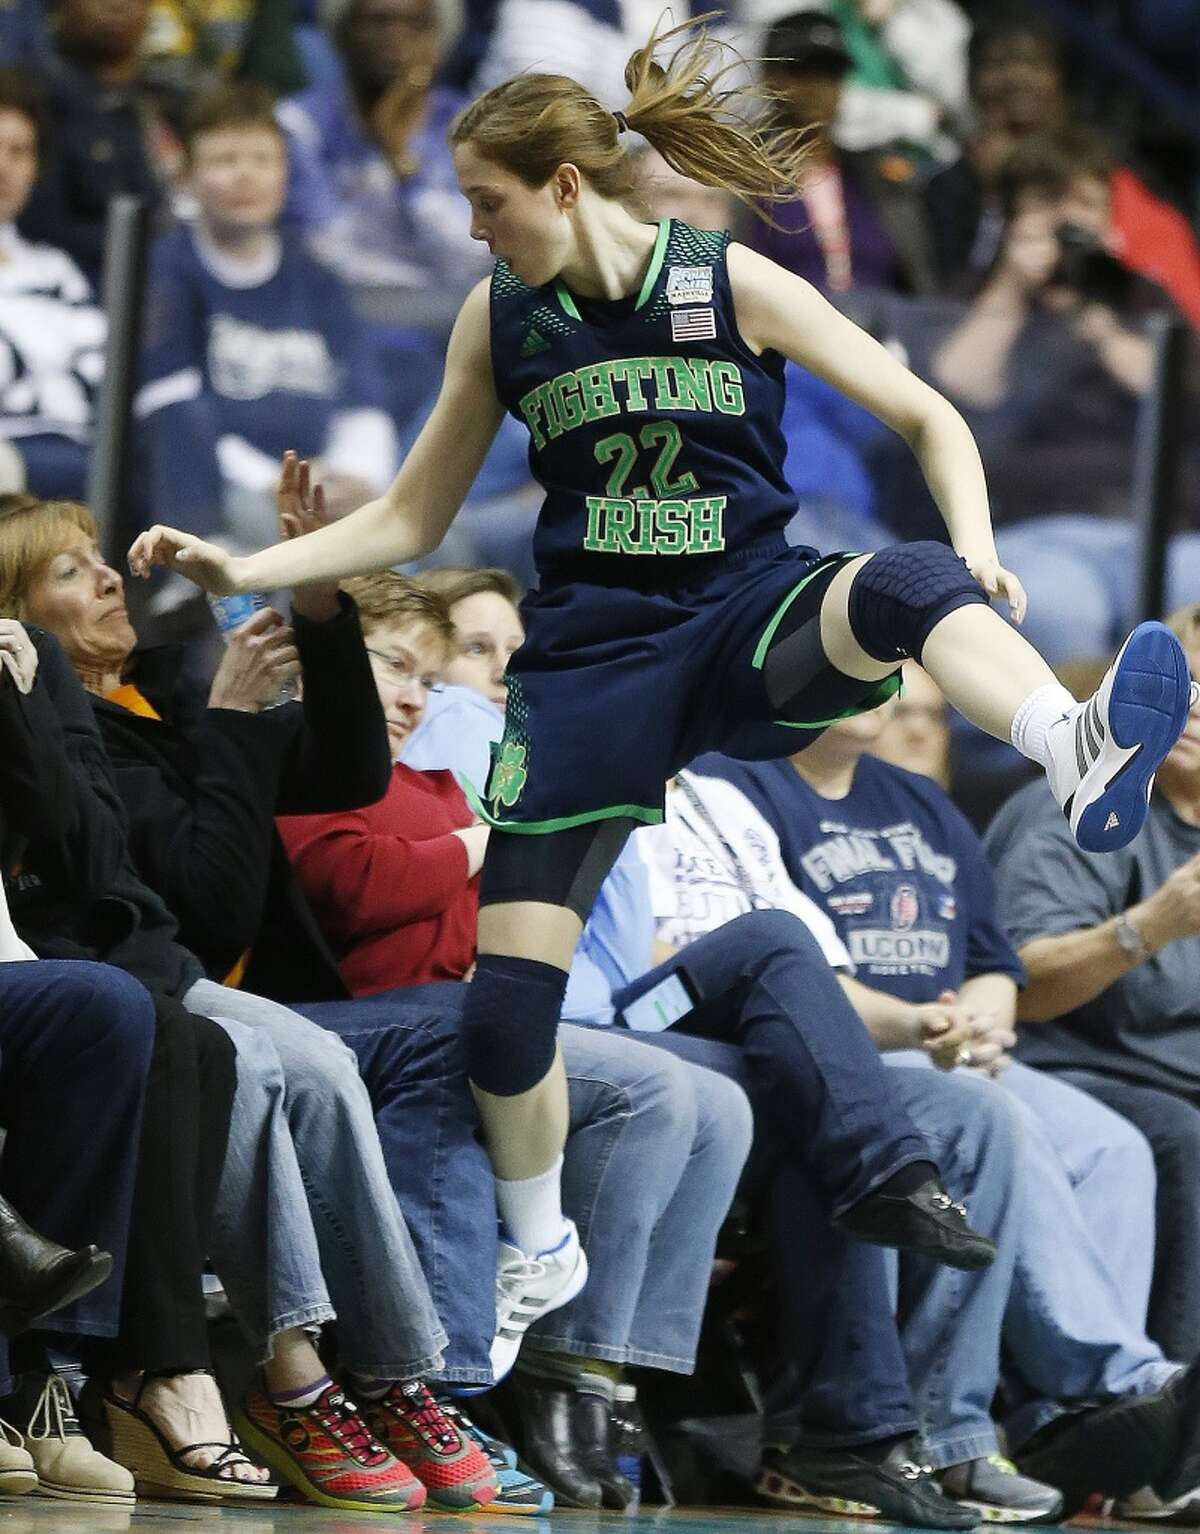 Notre Dame guard Madison Cable (22) flies off court during the second half of the championship game against Connecticut in the Final Four of the NCAA women's college basketball tournament, Tuesday, April 8, 2014, in Nashville, Tenn.(AP Photo/John Bazemore)